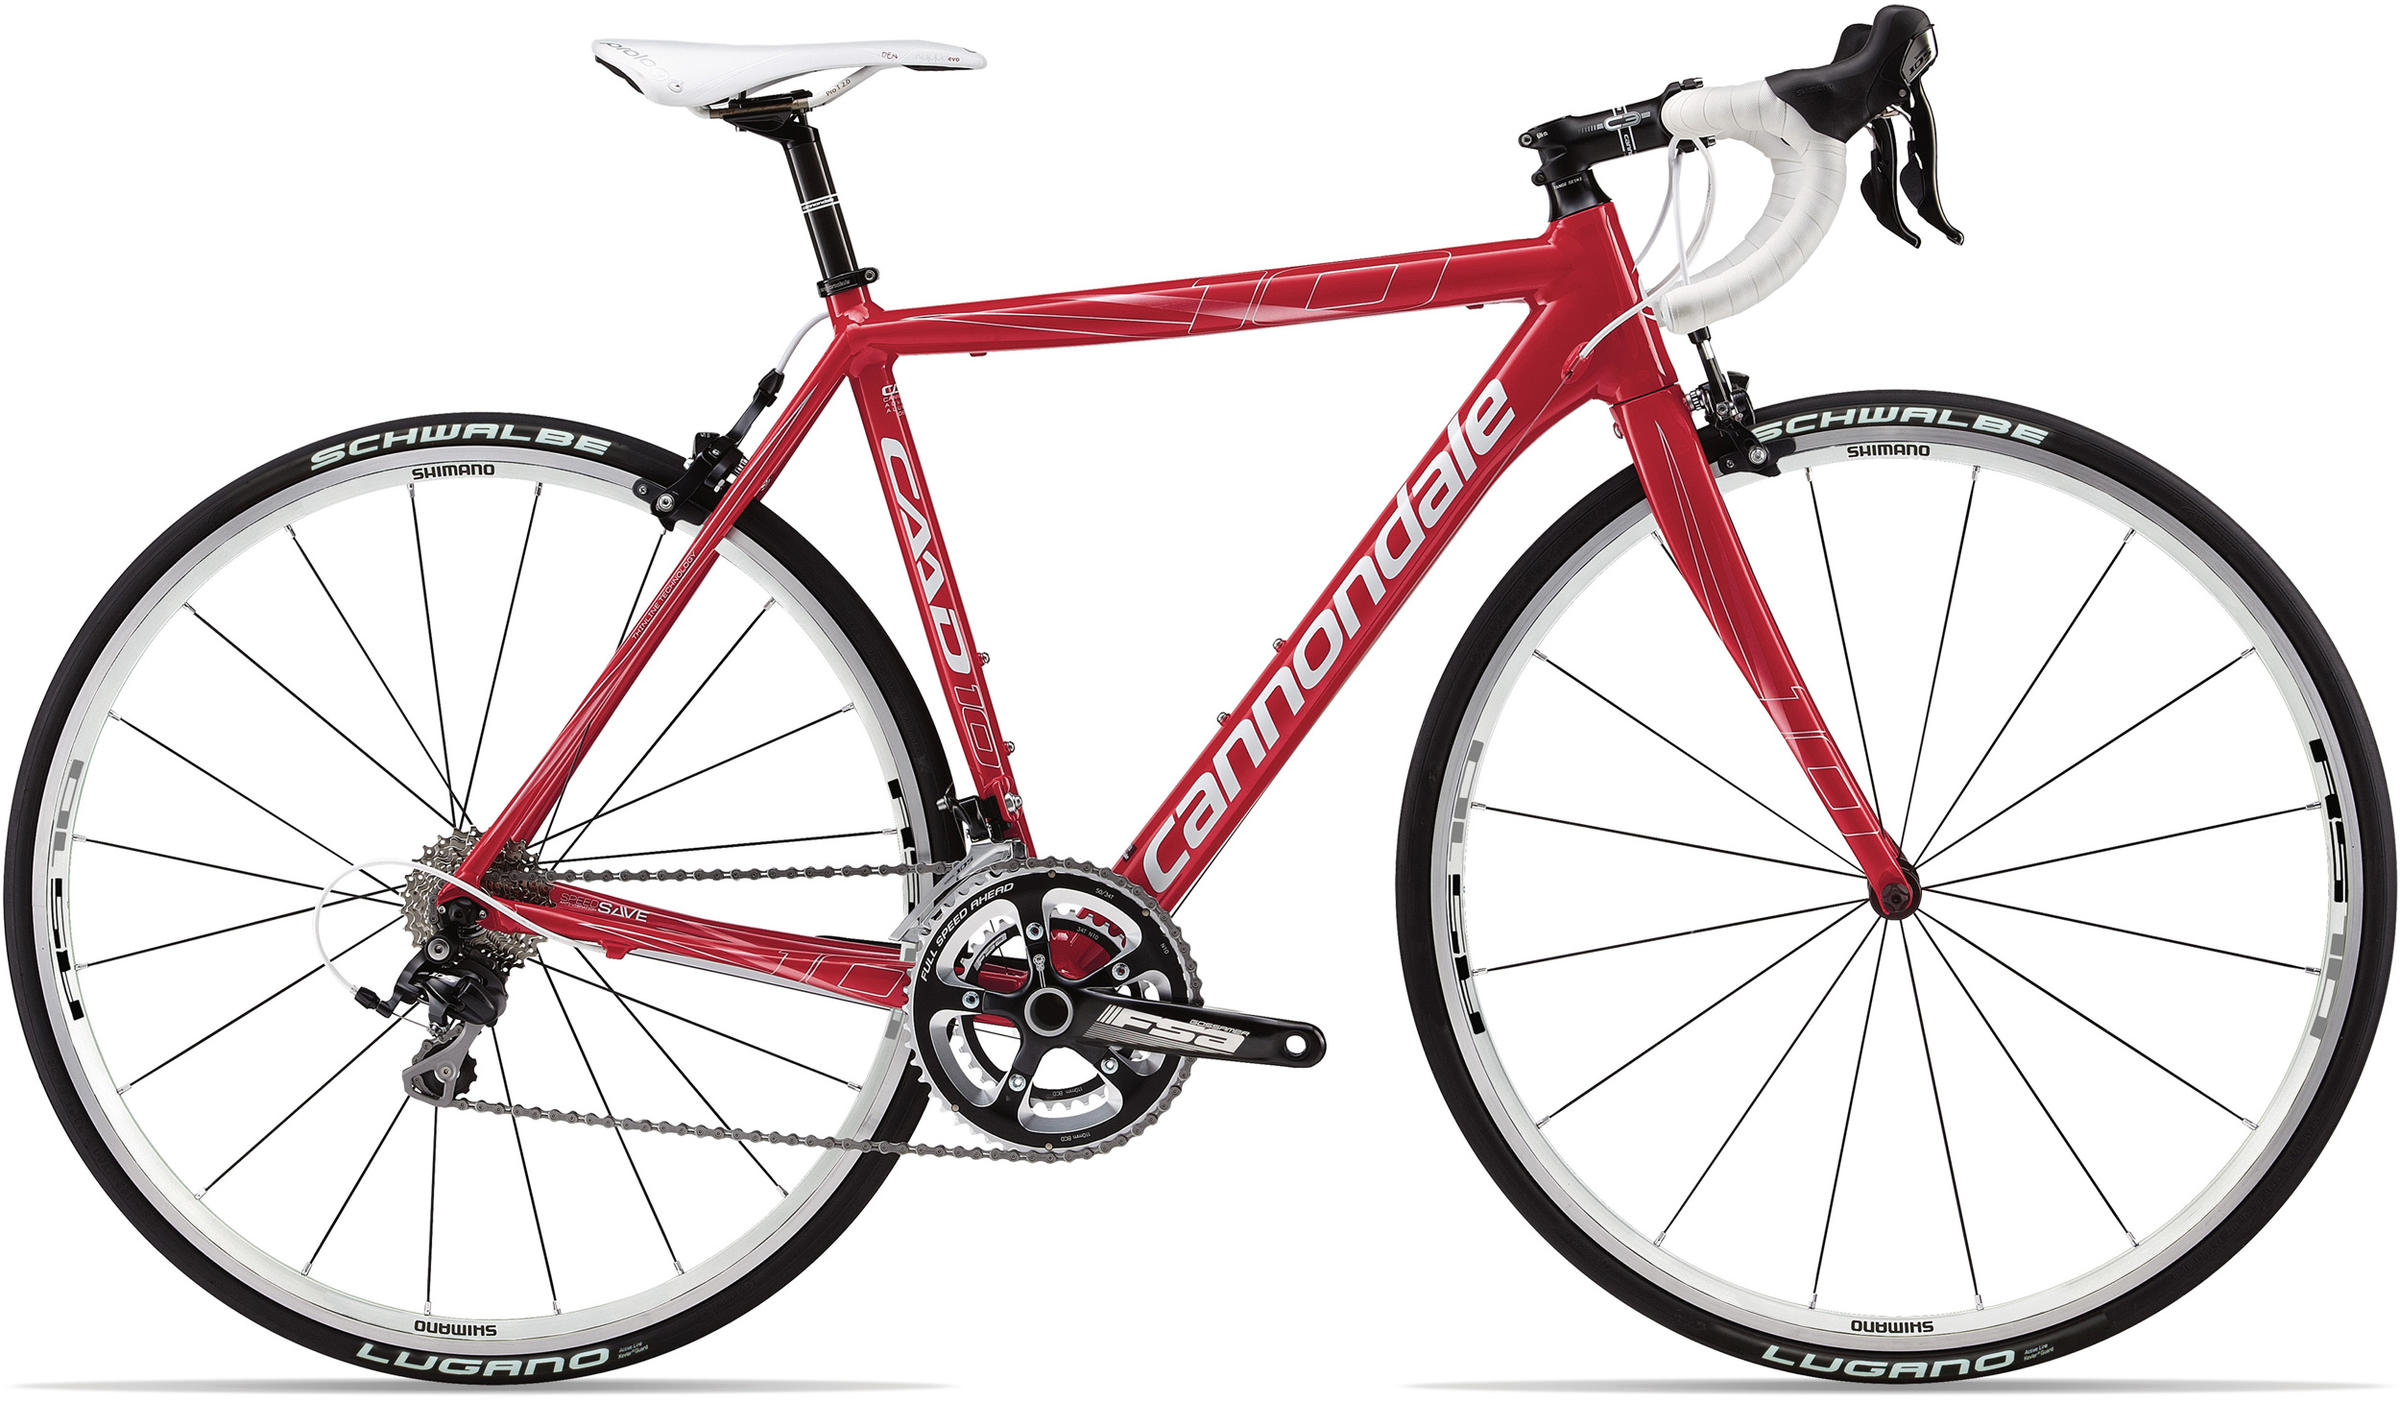 e090ffc56b4 Cannondale Women's CAAD10 5 105 - Montgomery Cyclery